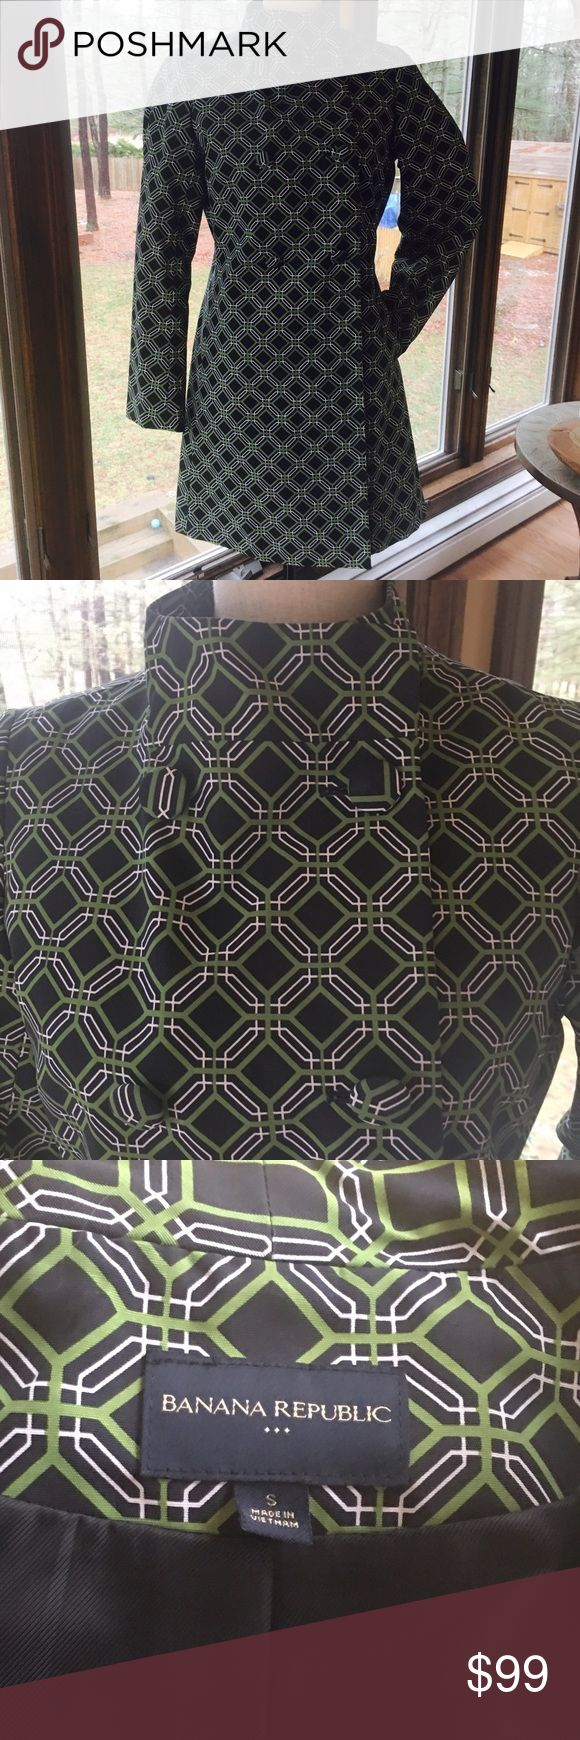 Banana Republic Geometric Print Rain Coat NWOT bold geometric print fully lined Raincoat by Banana Republic.  The green/black/white print pop for Spring!  It is an asymmetrical look that looks terrific on. Banana Republic Jackets & Coats Trench Coats